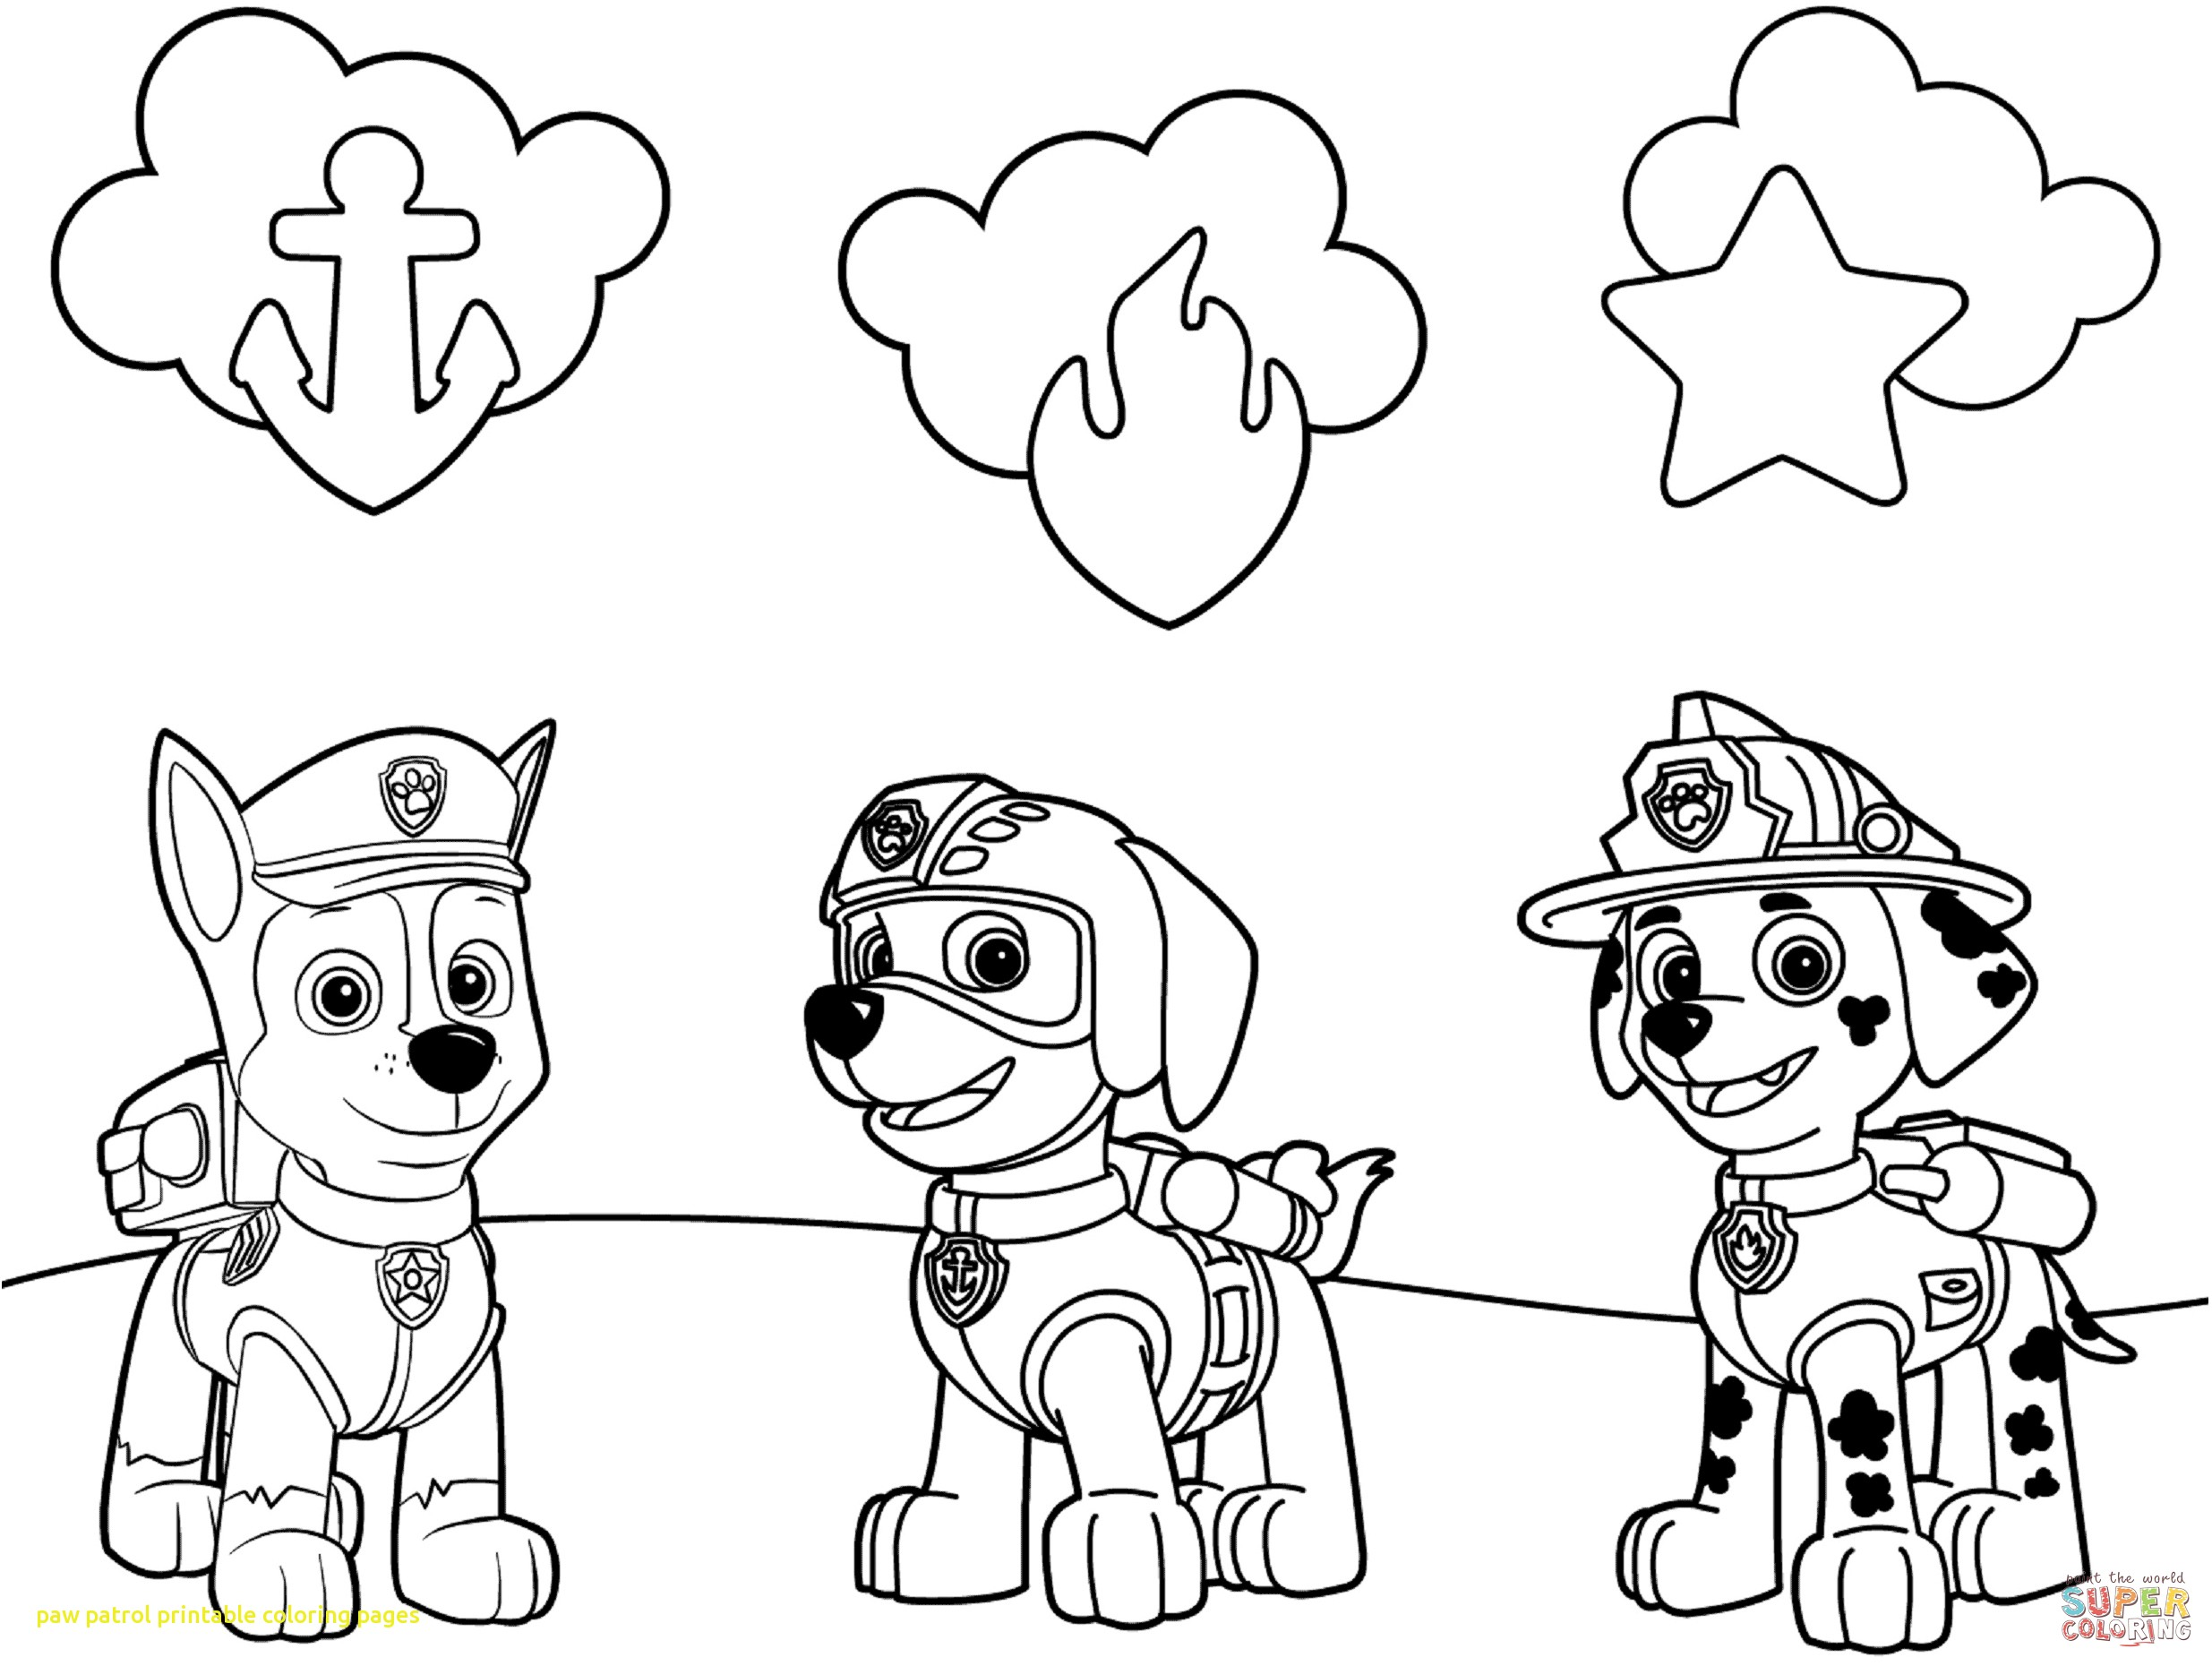 2470x1860 Paw Patrol Printable Coloring Pages With Paw Patrol Printable